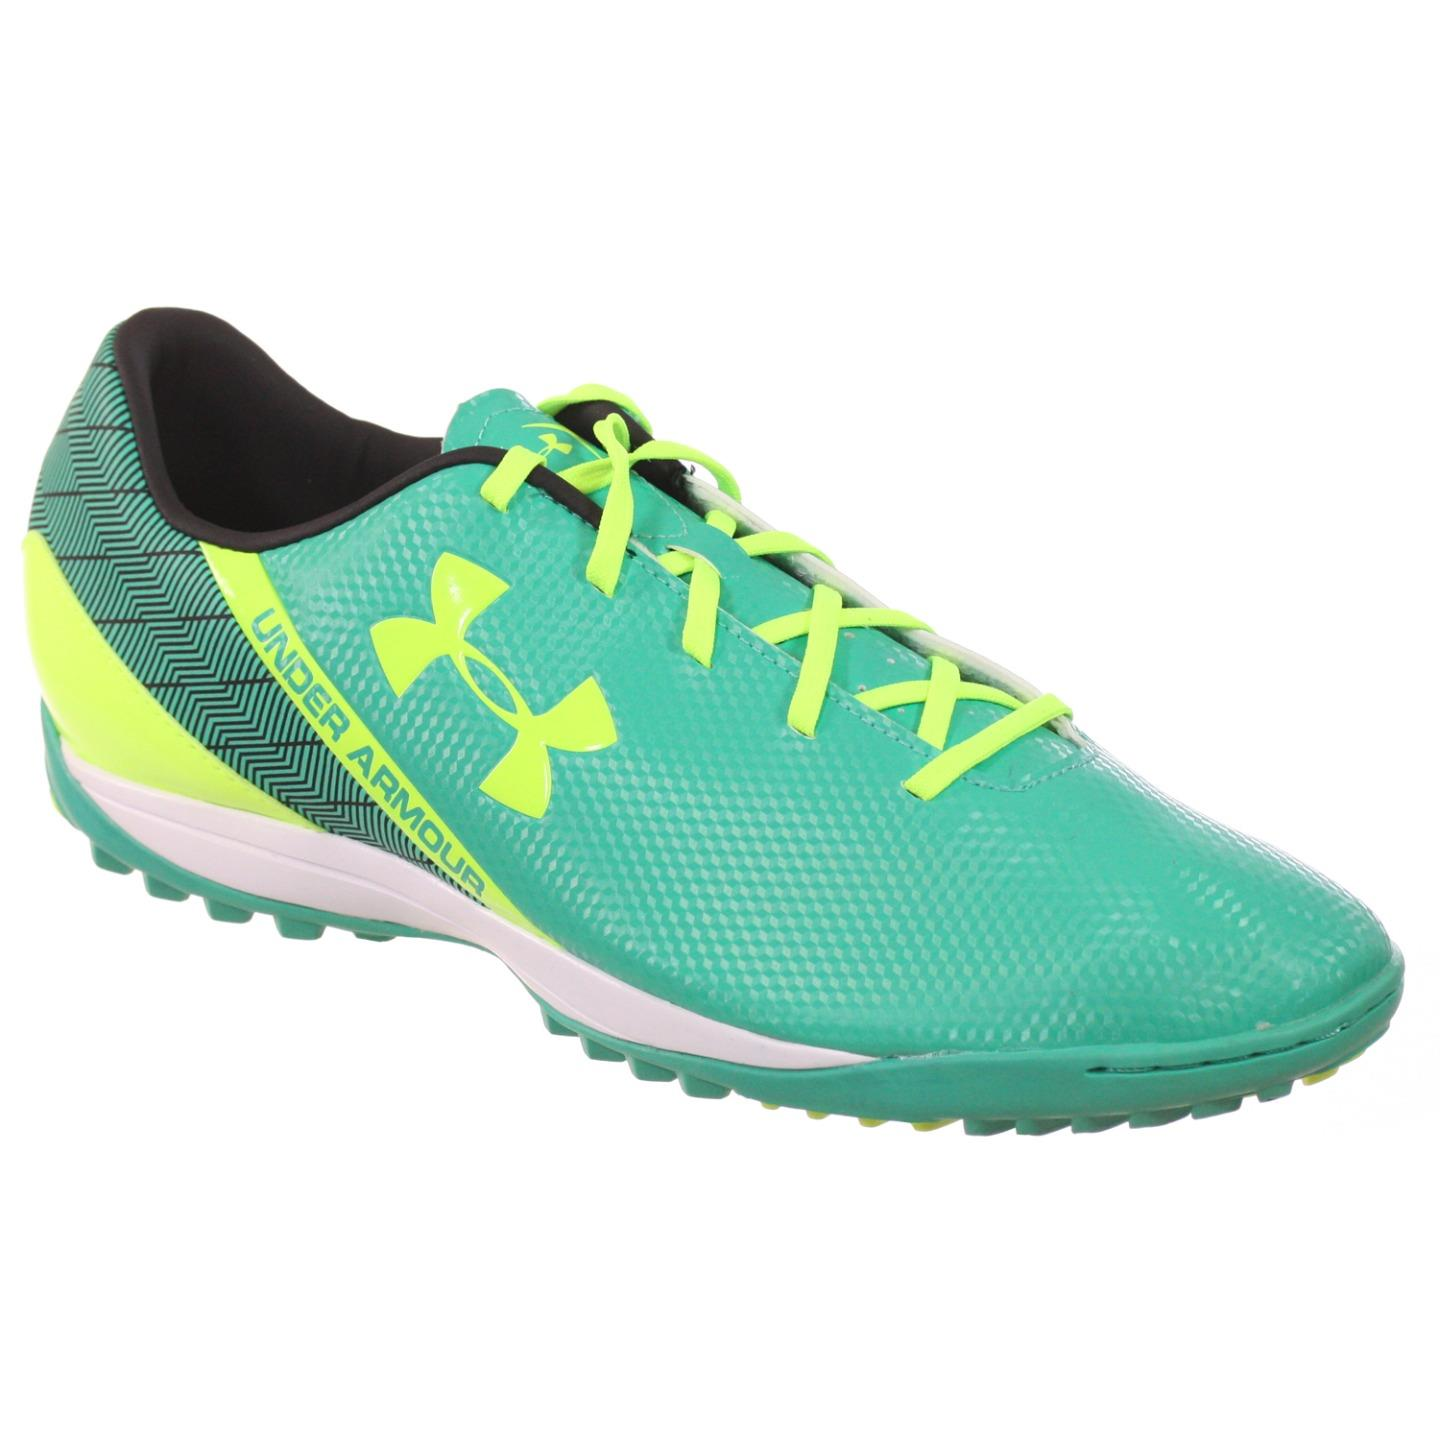 UNDER ARMOUR MENS SOCCER SHOES SF FLASH TR EMERALD NEON YELLOW BLACK 13 M